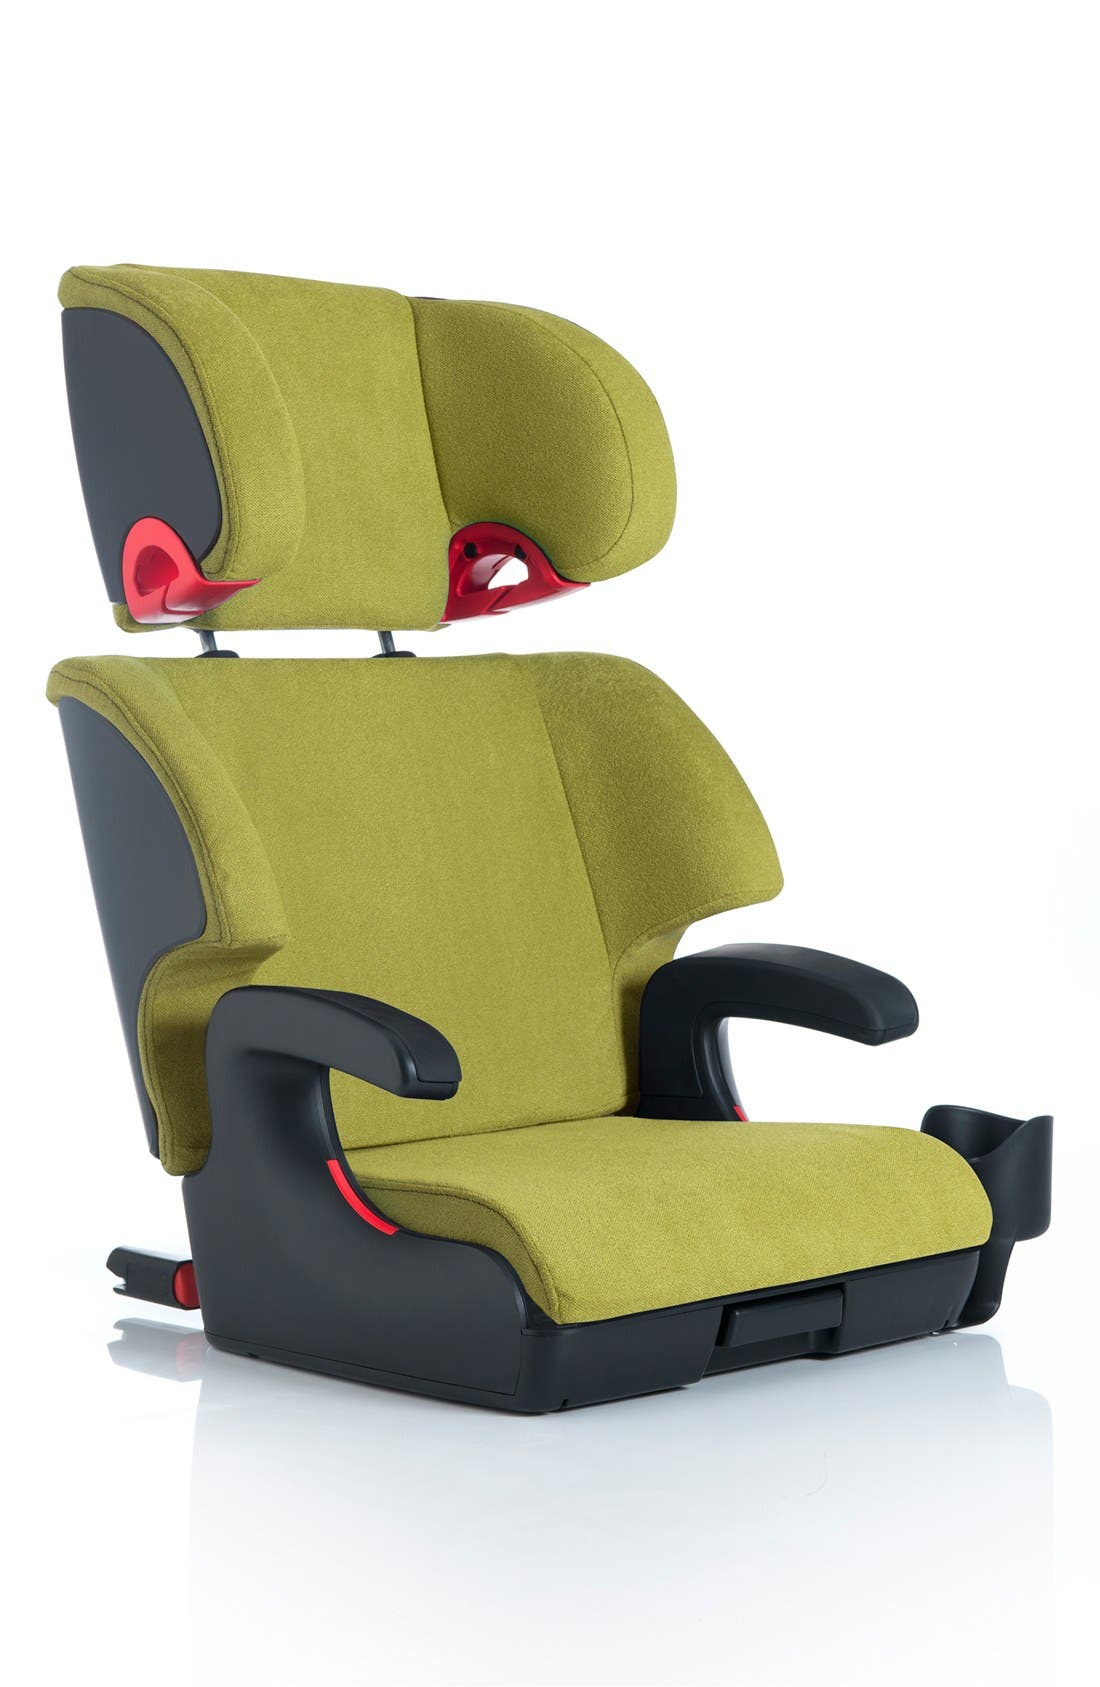 Clek 'Oobr' Booster Seat